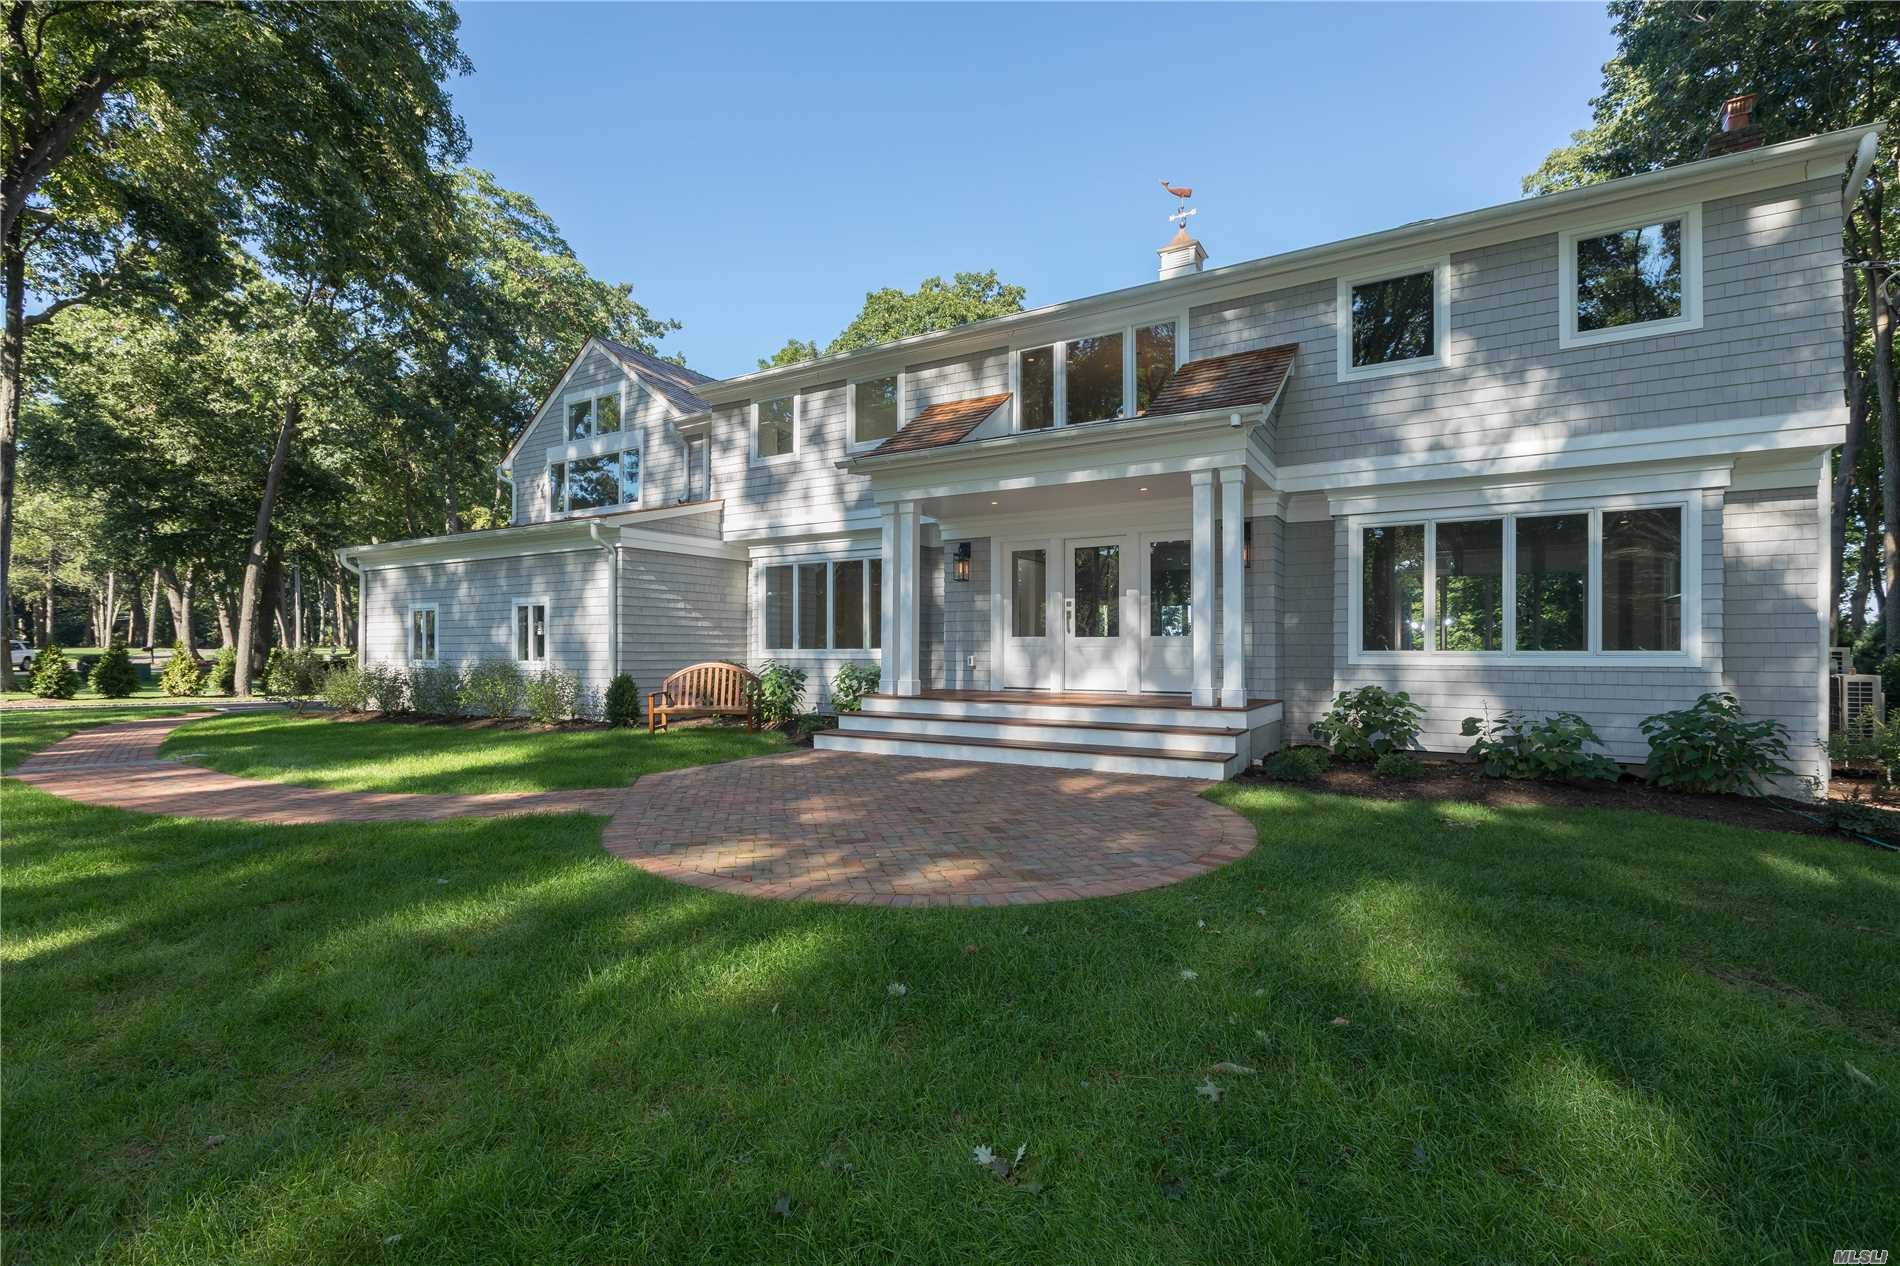 Fabulous Waterfront/Waterview! Completely New!! Built With Fine Details. Magnificent, Panoramic Views From All Principal Rooms.This Property Offers A Permanent Deeded Easement To Direct Beach Access.The Interiors Boast Custom Millwork, Hardwood Floors & High-End Baths.The Exteriors Include Maibec Perfection Shingles, Cedar Roof, Azek Trim, Ipe Decking, Gunite Pool & Professionally Designed Landscaping. Adjoining Property Can Be Purchased Separately To Create 4-Acre Waterfront Compound.